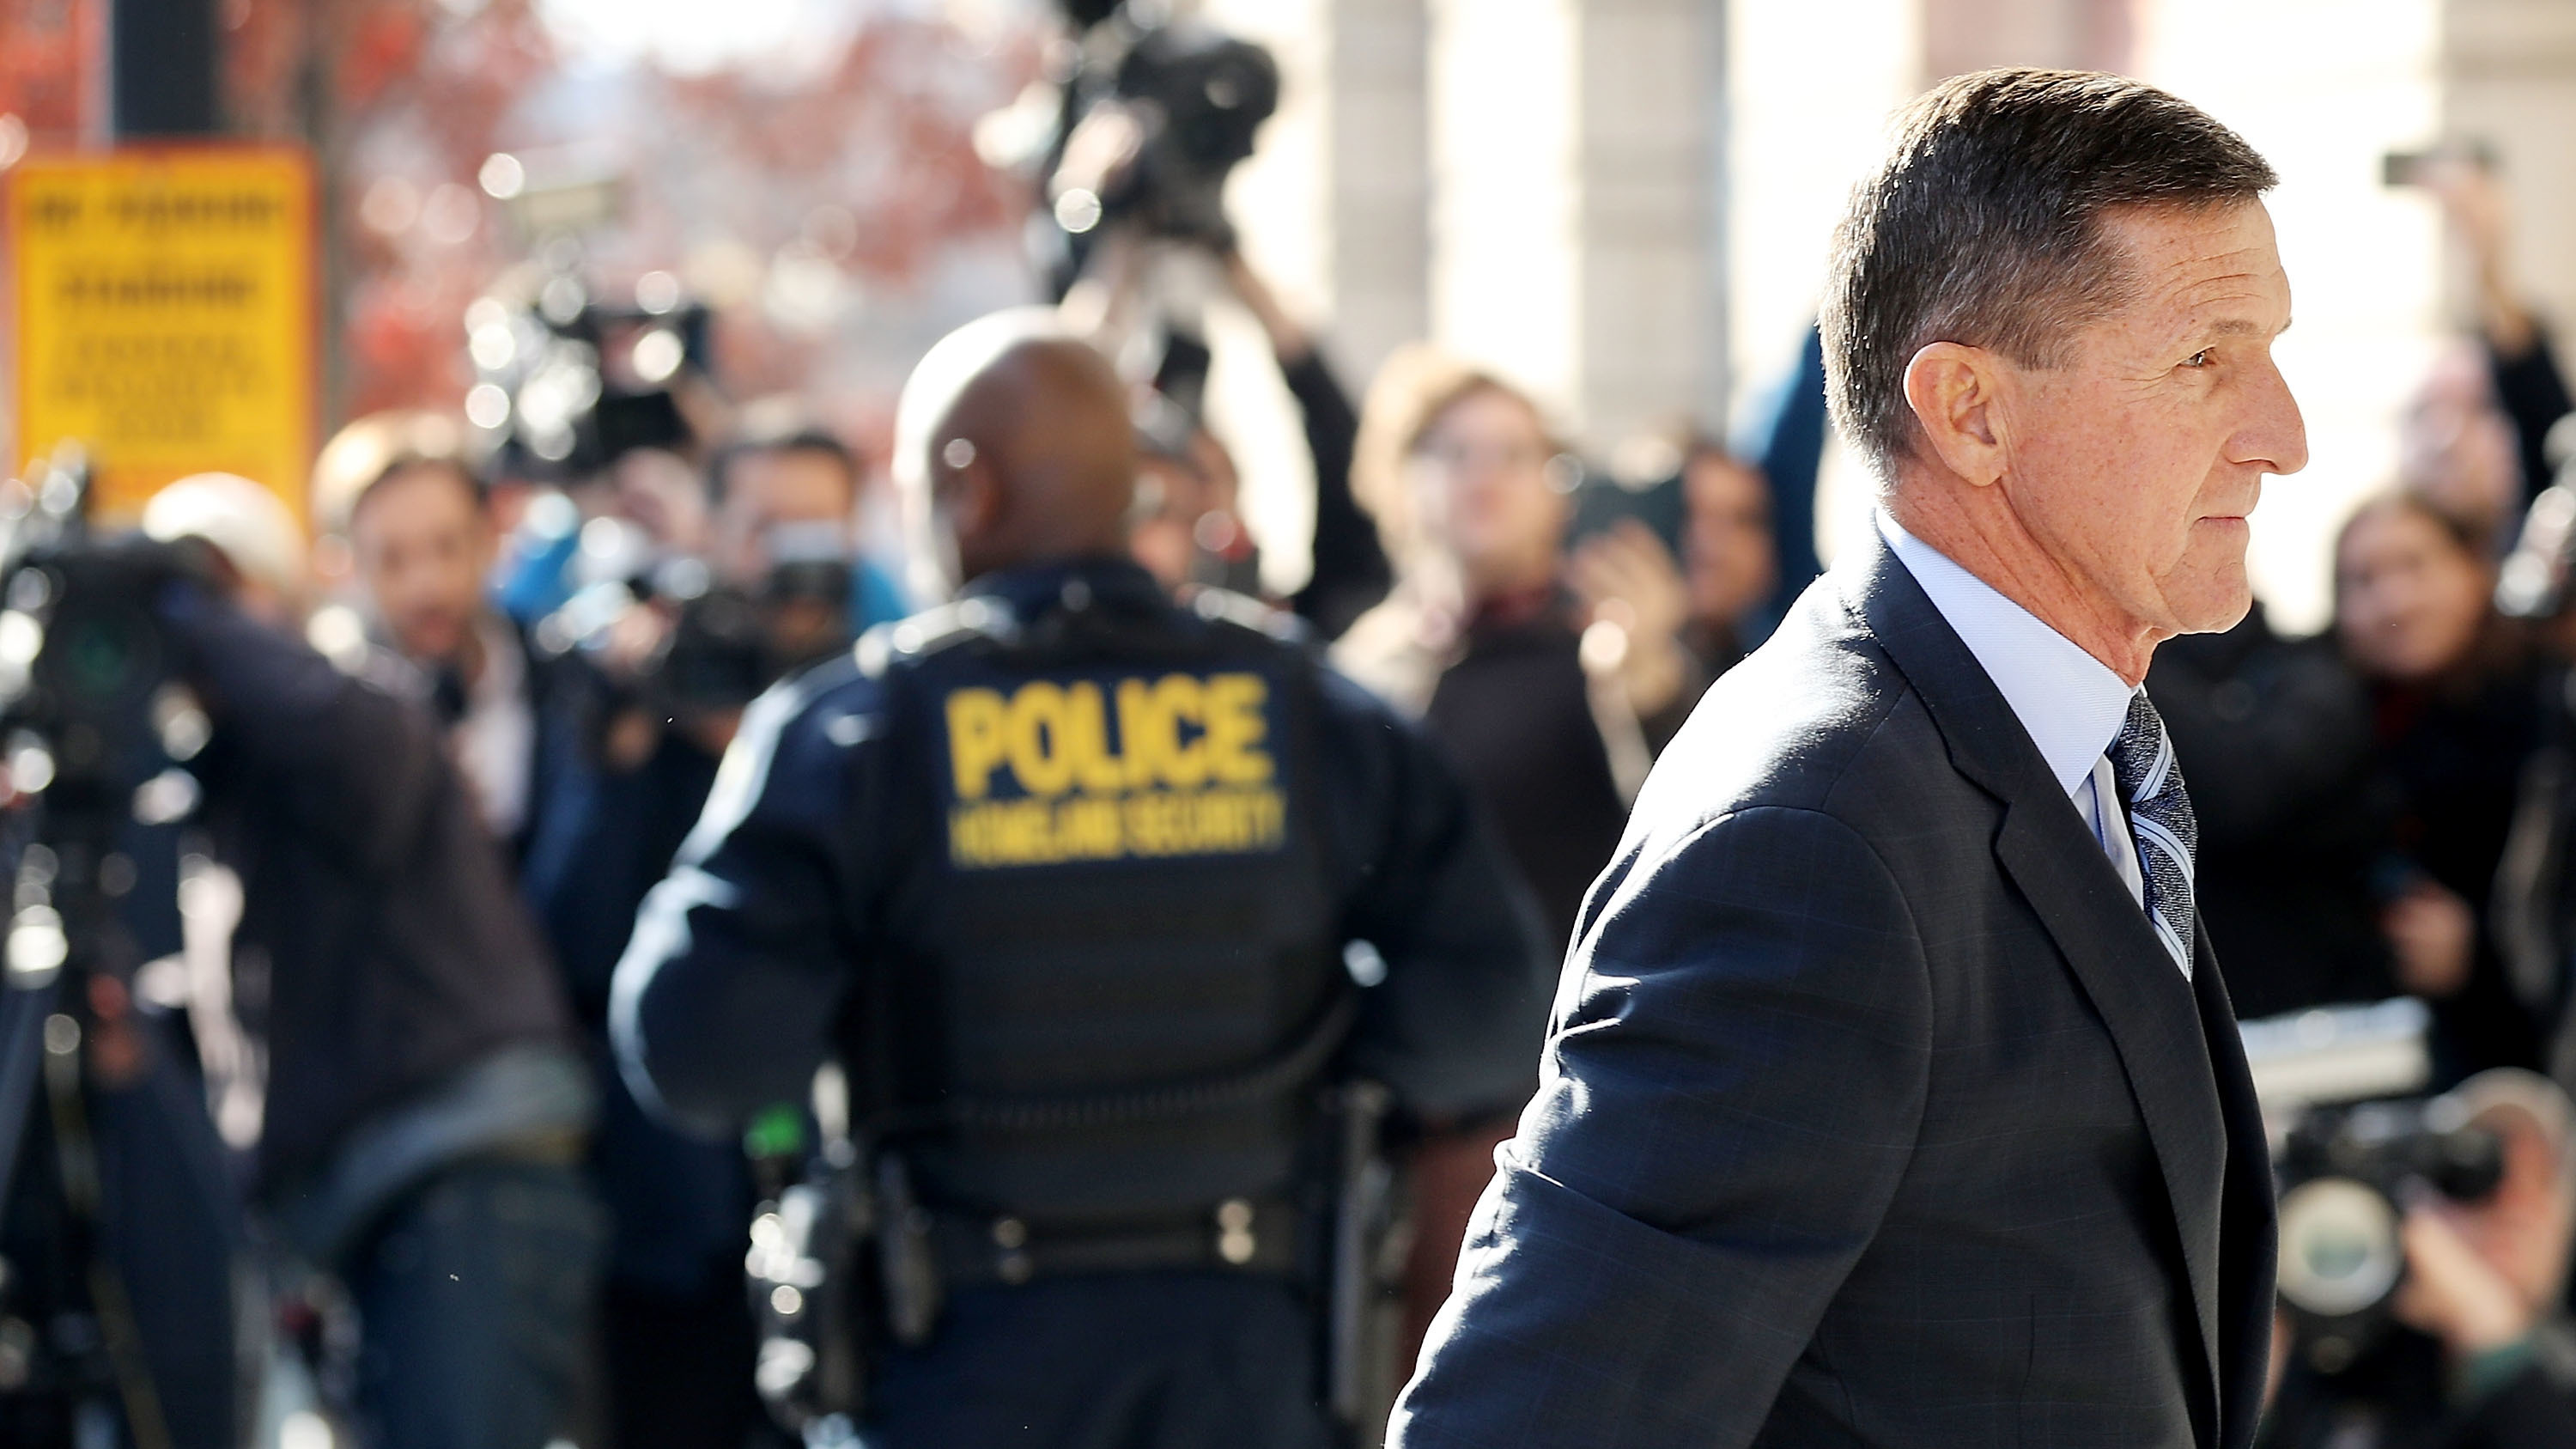 The 10 Events You Need To Know To Understand The Michael Flynn Story